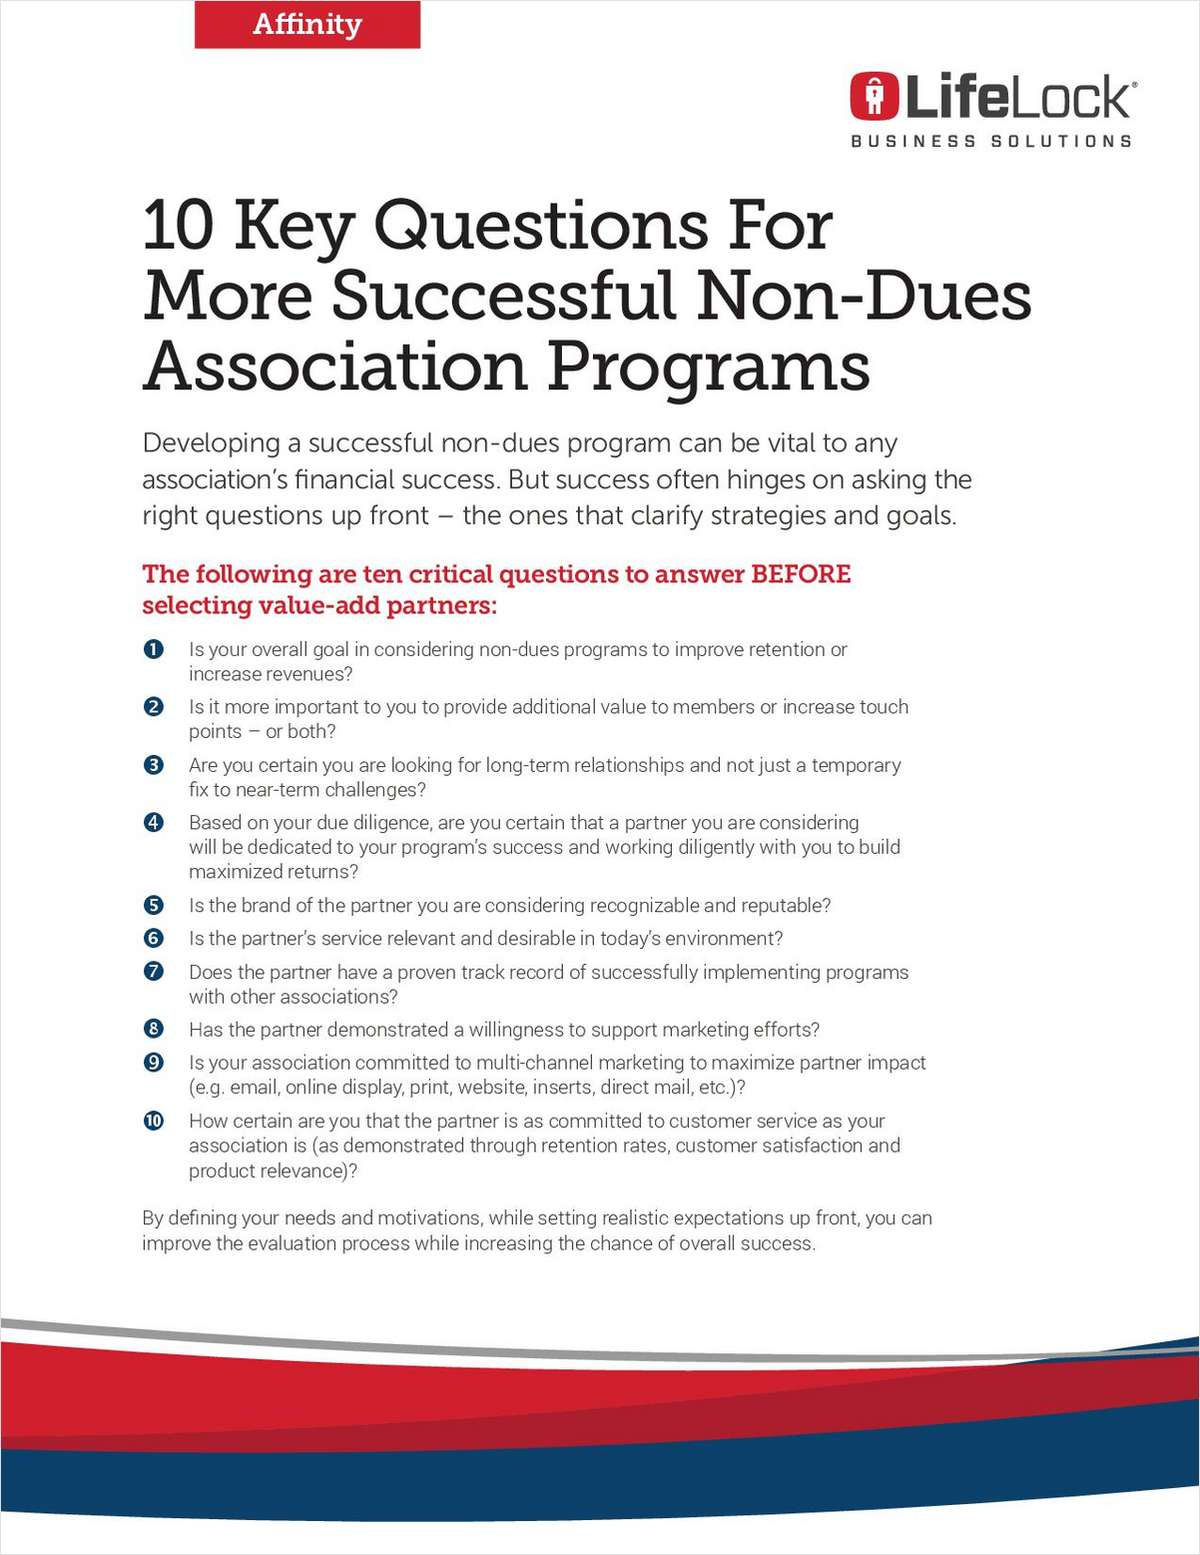 10 Key Questions For More Successful Non-Dues Association Program